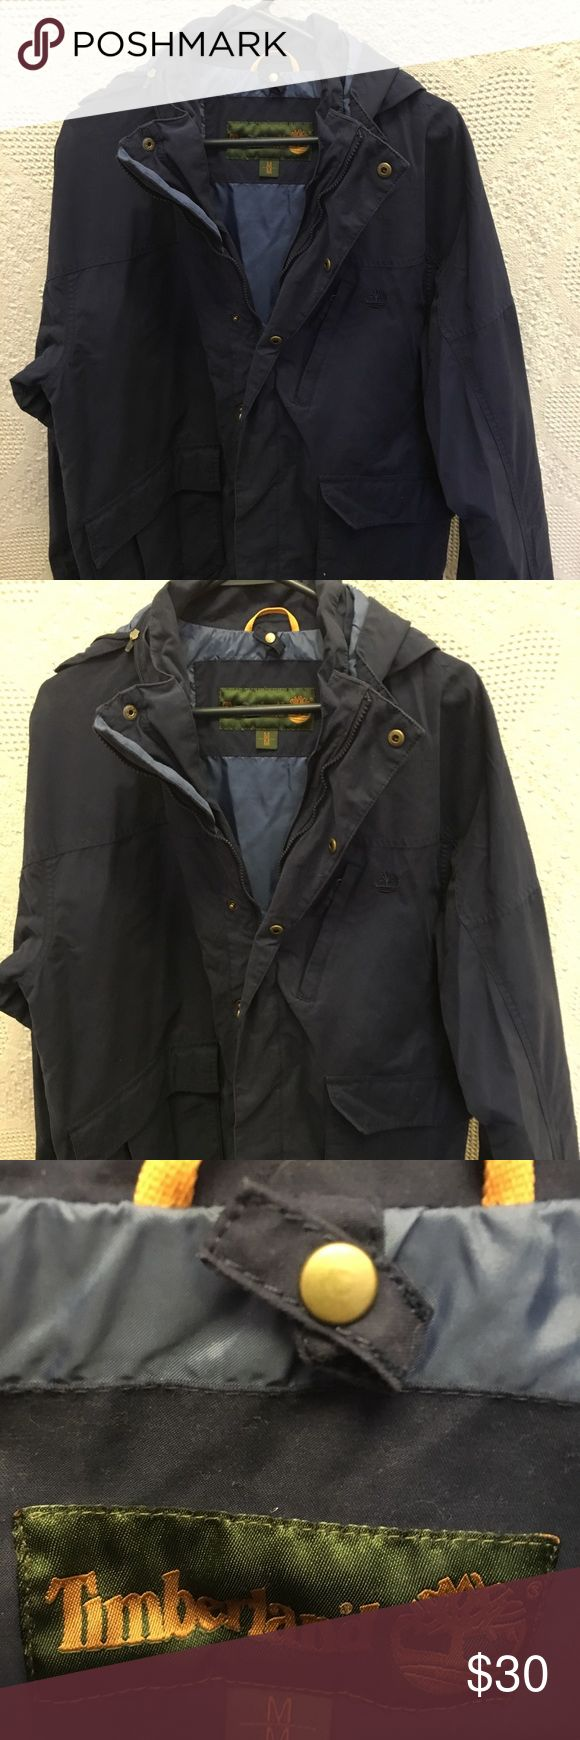 Timberland Mens Jacket Medium Navy Timberland Mens Jacket Medium Navy Timberland Jackets & Coats Lightweight & Shirt Jackets